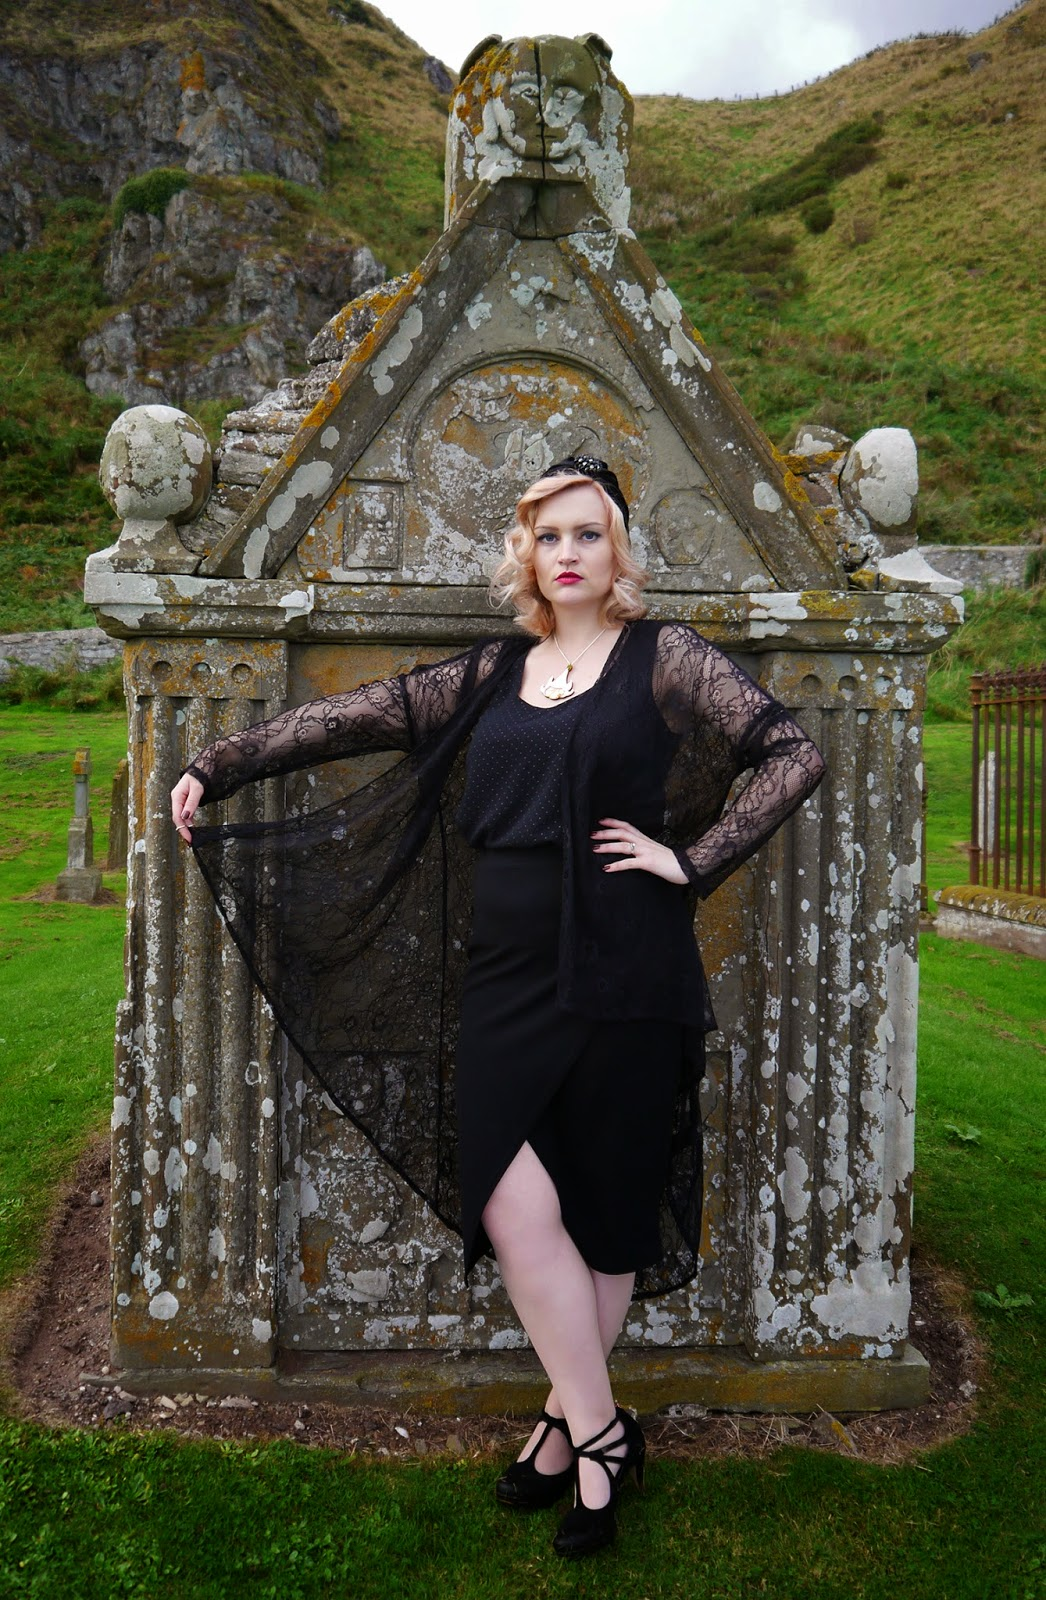 spiritual medium, psychic, the coven, witch, fashion, peach hair, turban, 1920s, flapper, poisonous flowers, scottish bloggers, scotstreetstyle, Kimberley festival, dame, goth, trend, fashion shoot, scotland, graveyard